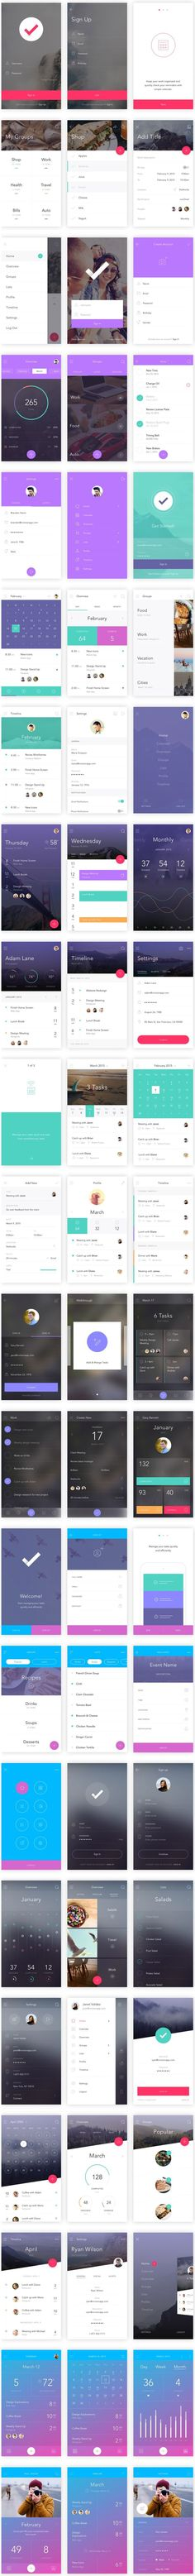 TweetSumoMe Friends, today's featured freebie is a smashing mobile app ui kit called DO. The kit, created by InvisionApp, is for free for Photoshop and Sketch. It's got over 130 stunning screens, 10 complete themes, #MobileApps